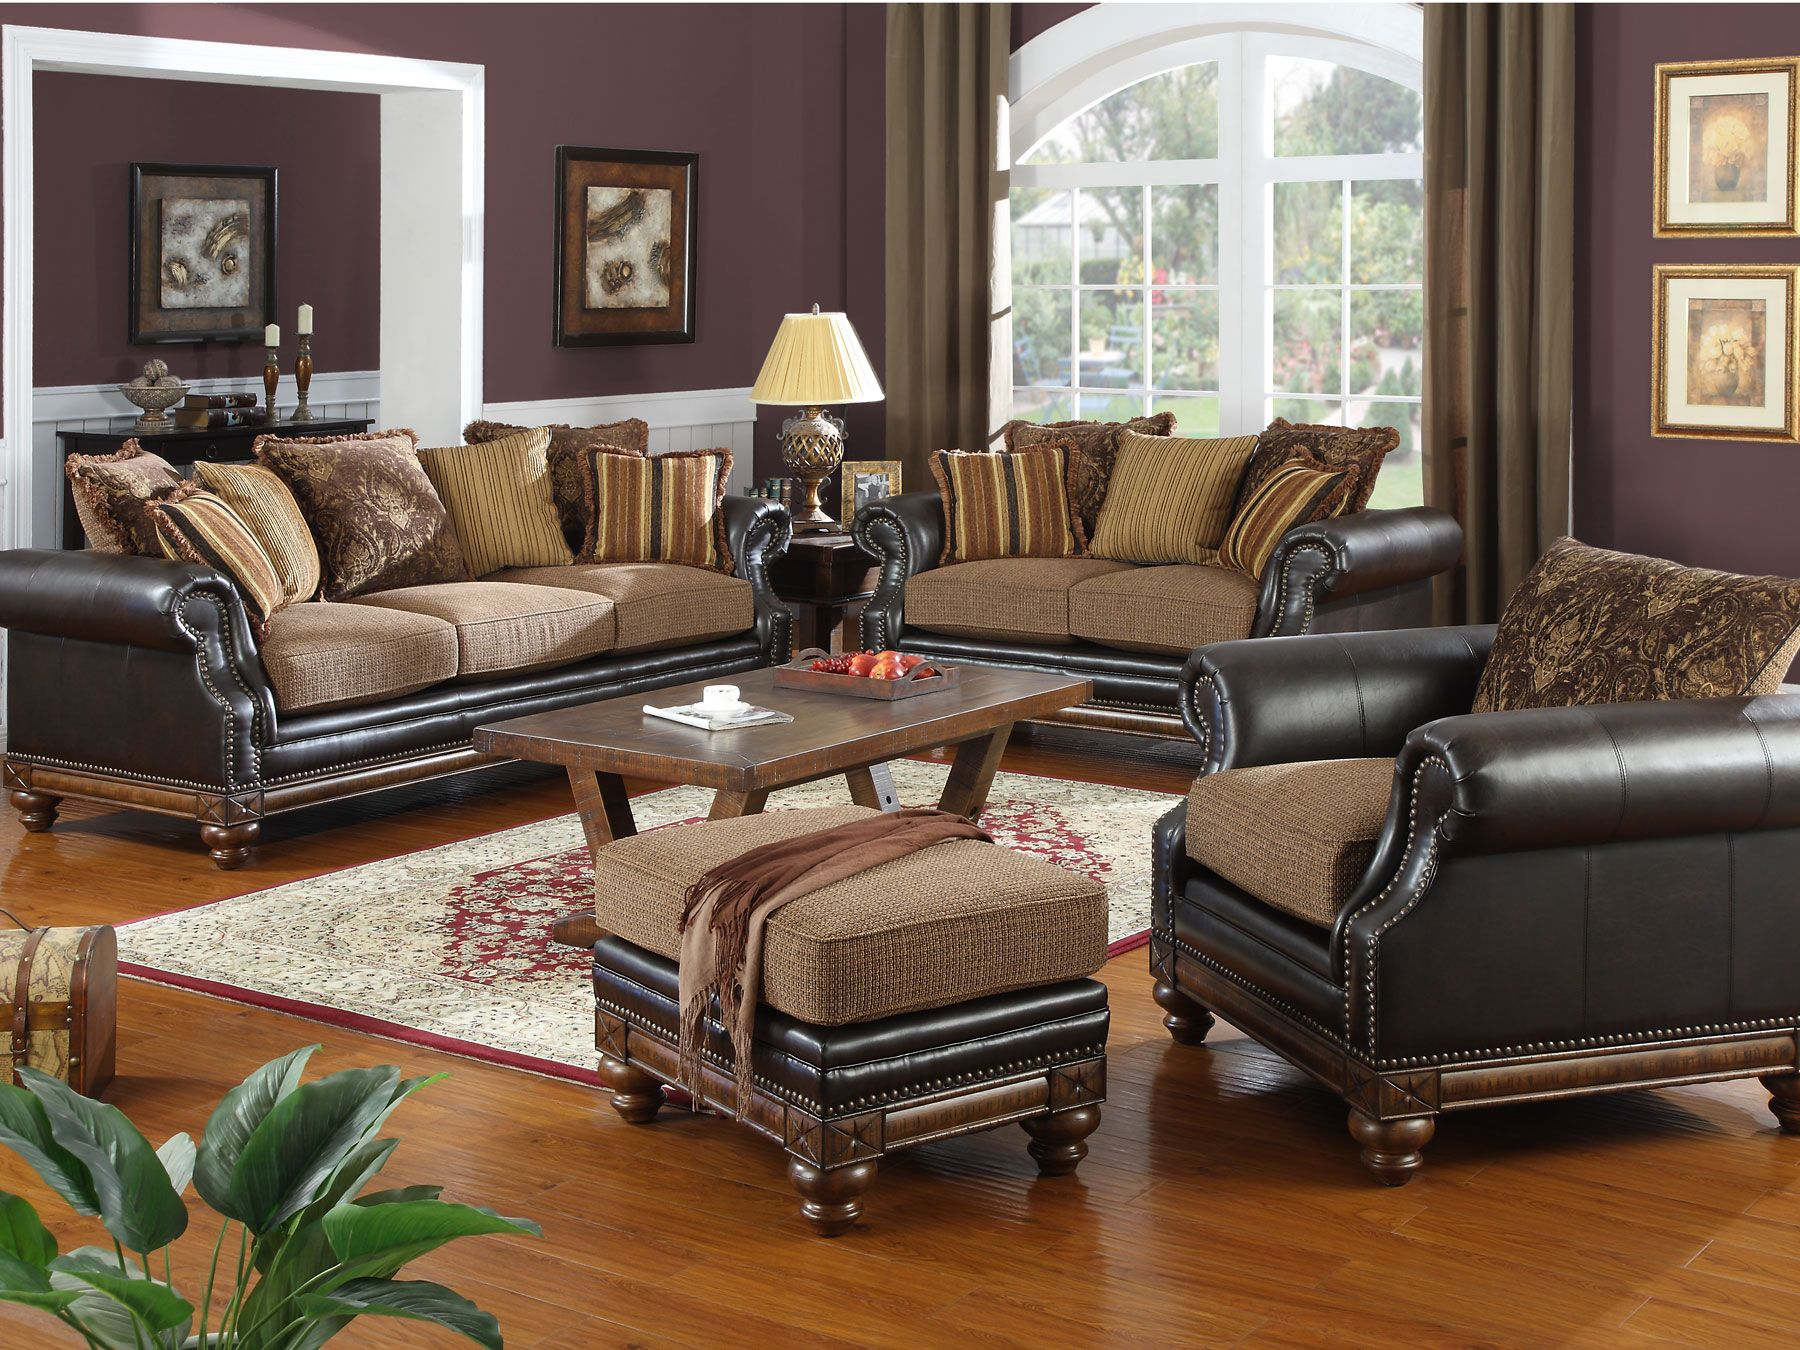 Leather Living Room Sets On Living Room Furniture Ideas Http Arrishomescom 7384 Living